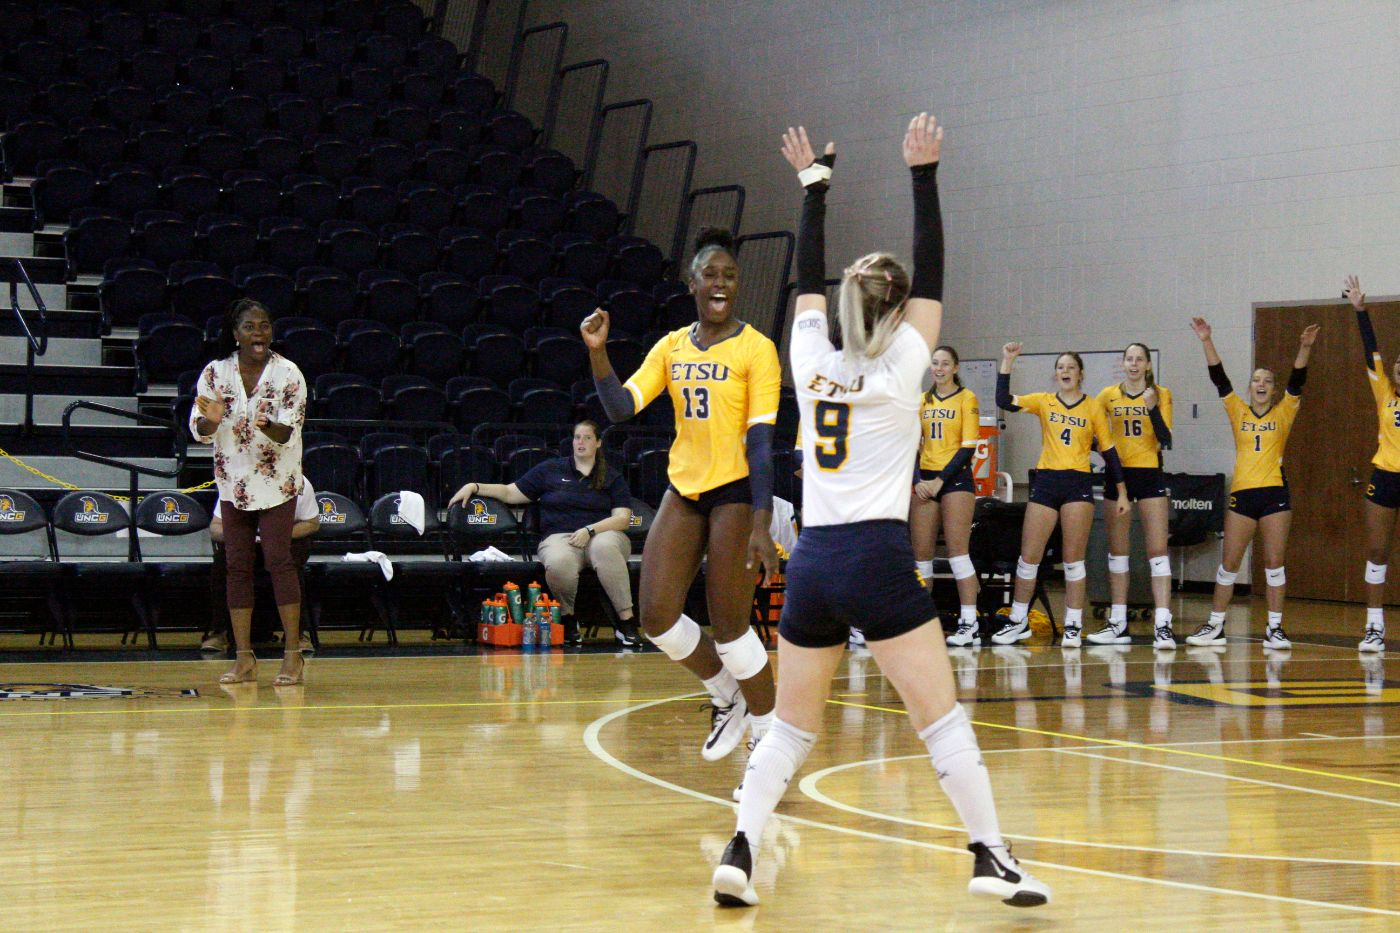 Bucs Sweep Spartans; Improve to 2-0 in SoCon Action